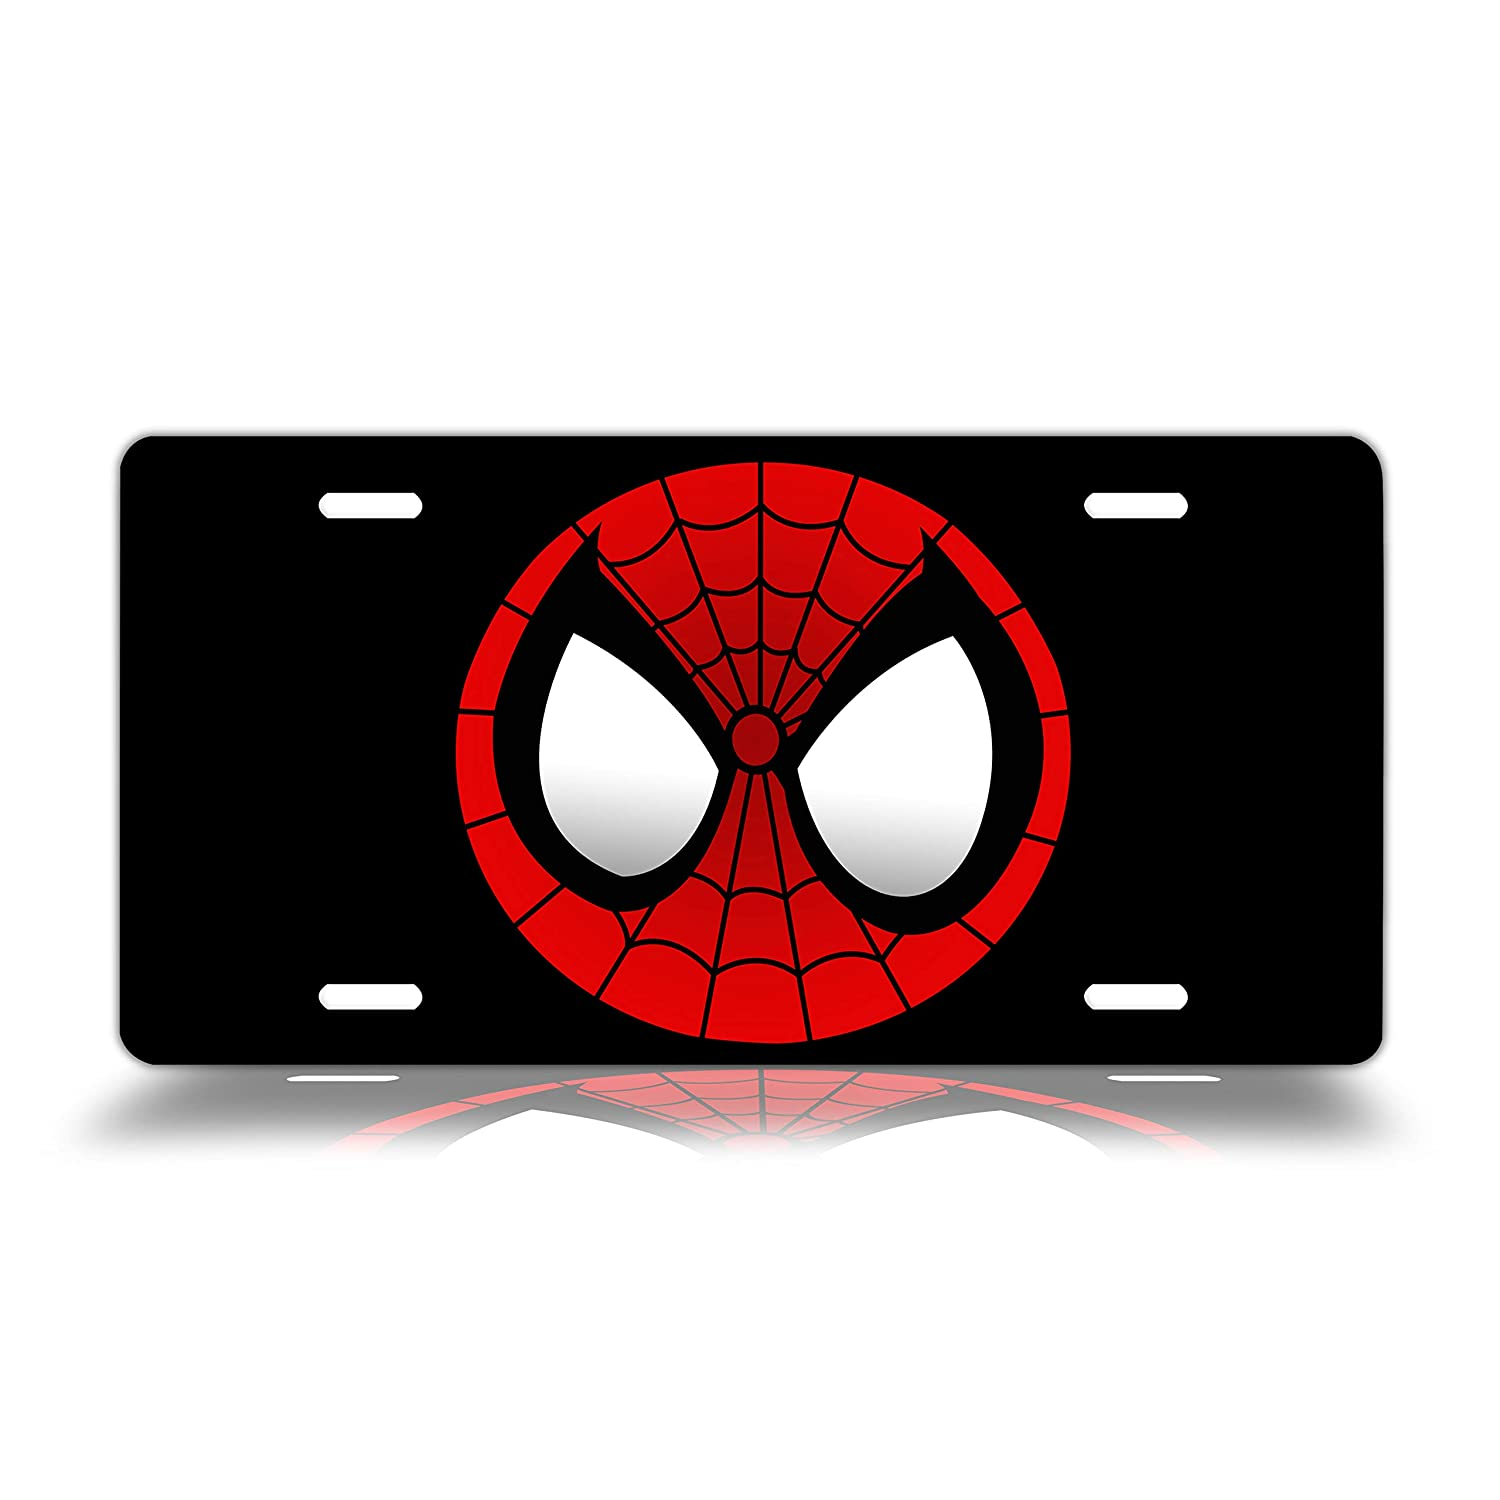 Dang Xin Spiderman Eyes Metal License Plate 12×6 inches